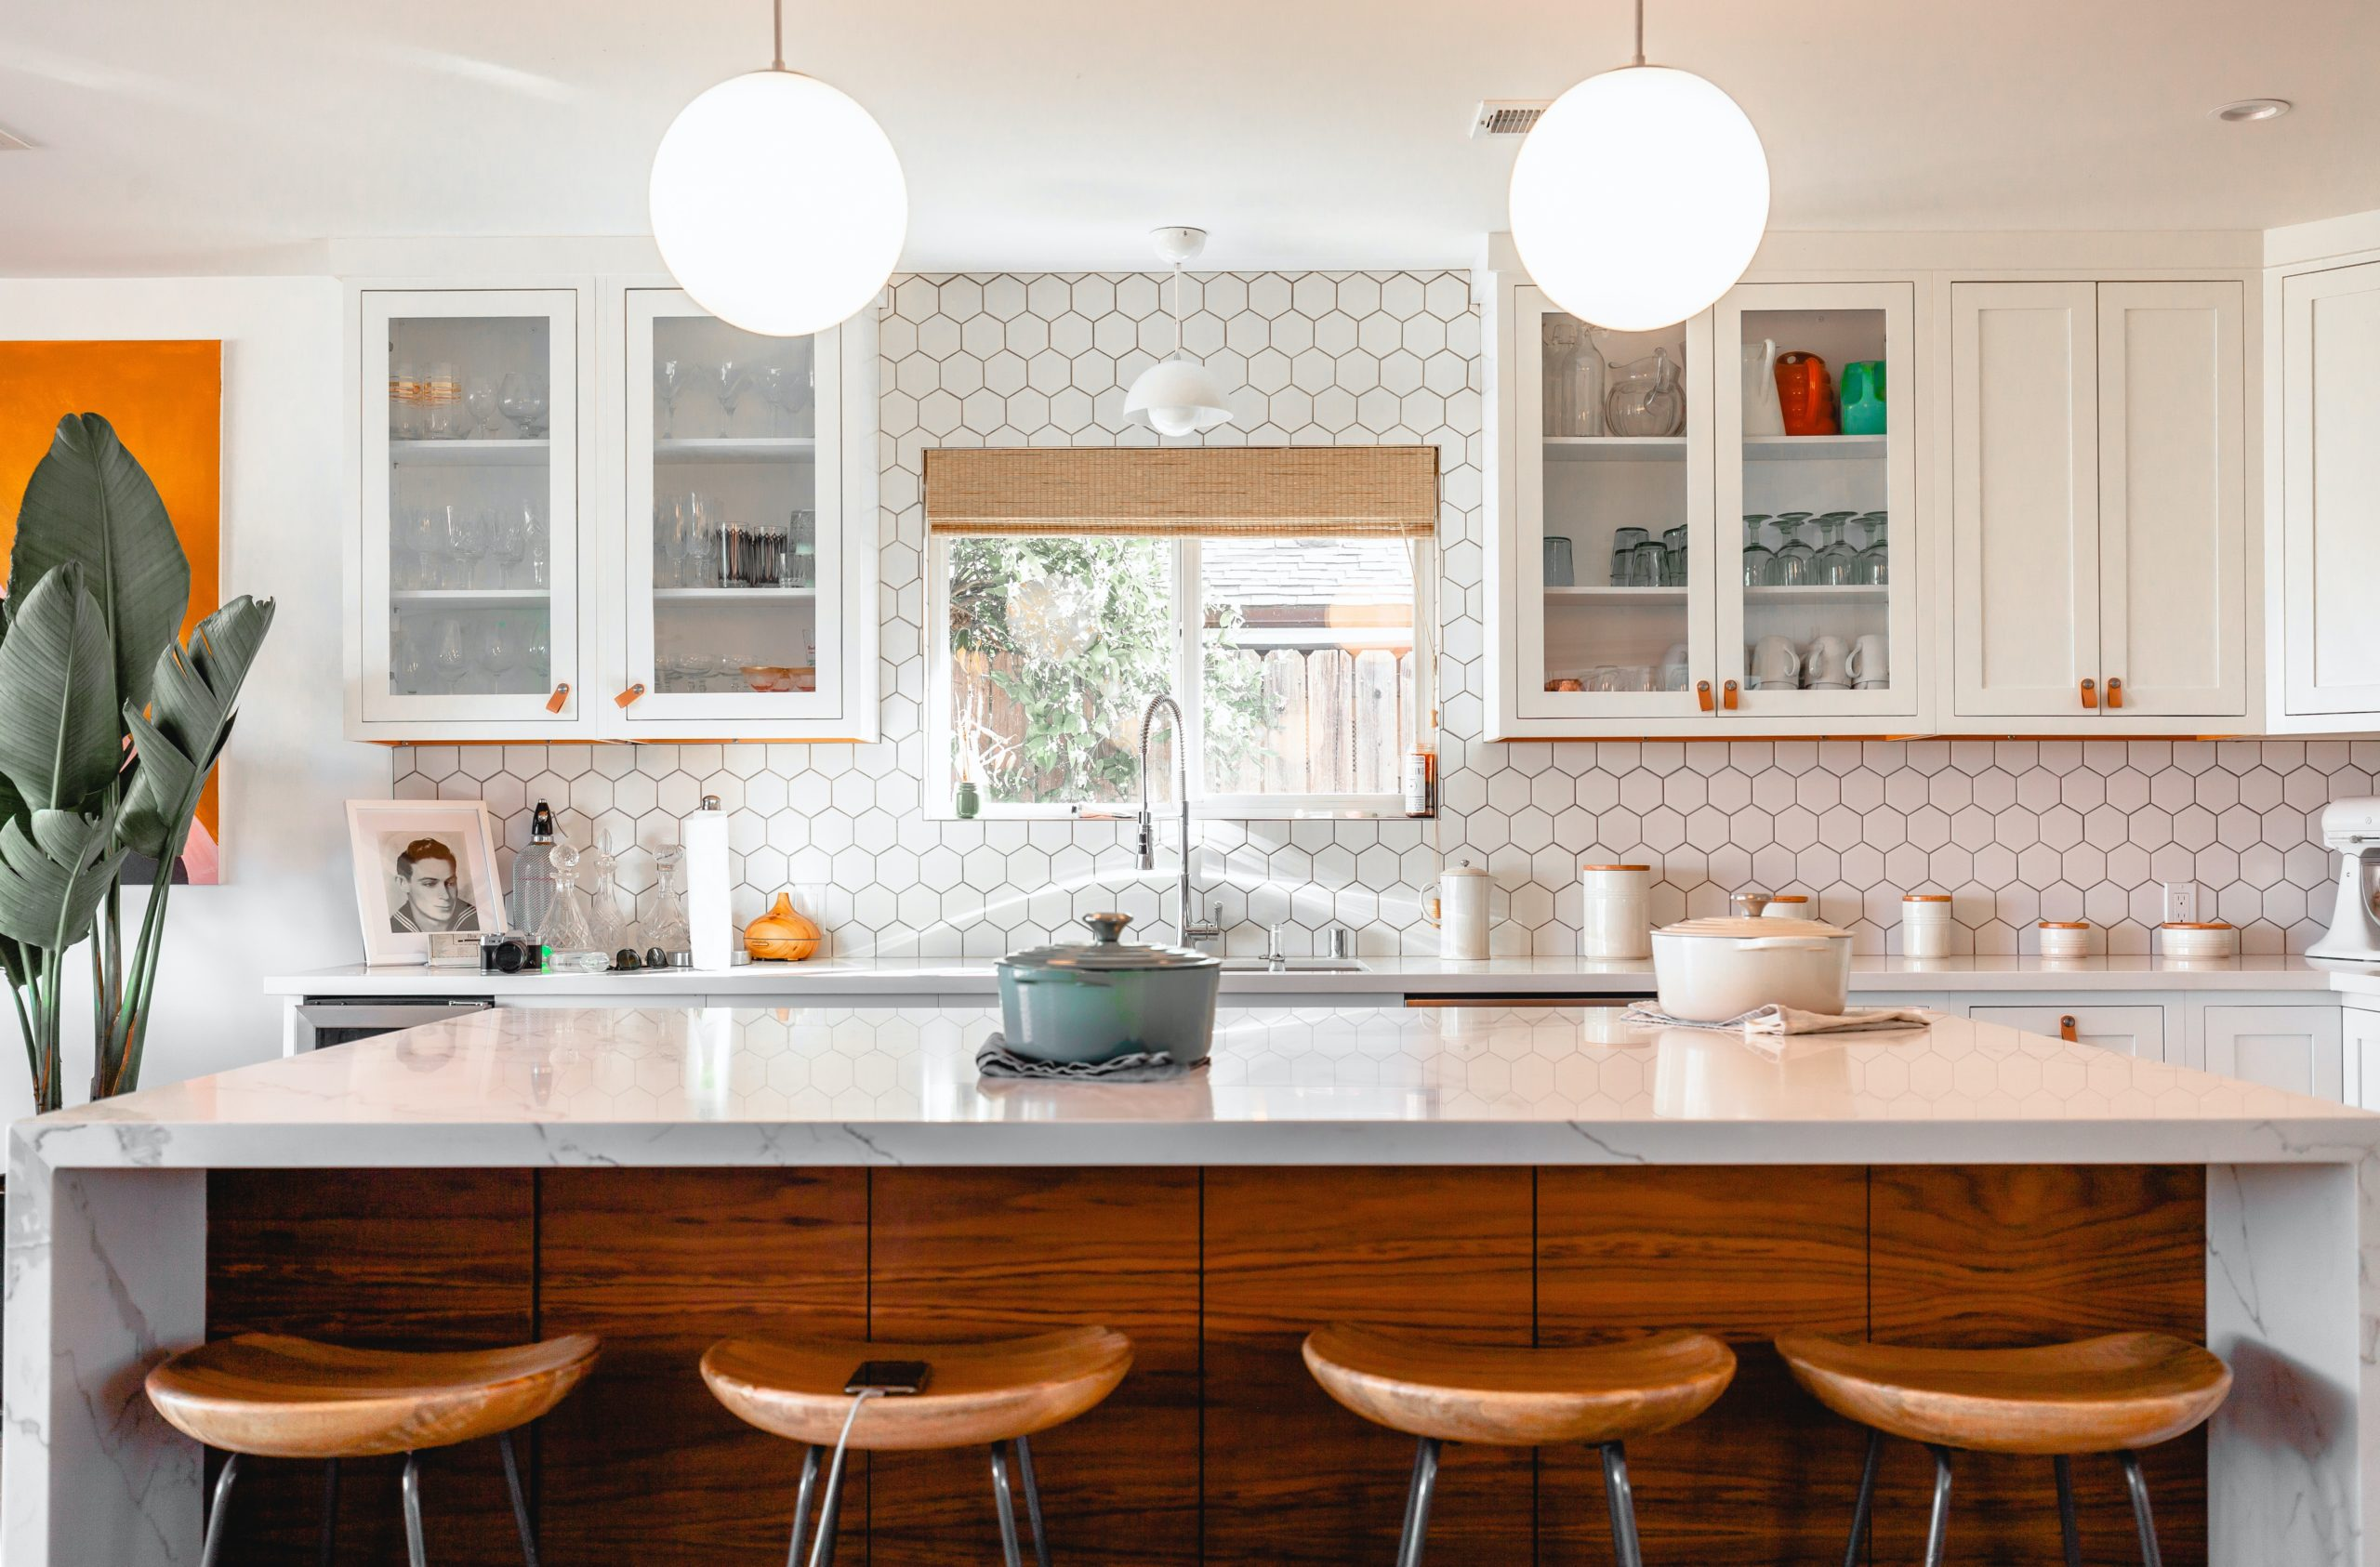 auckland property partners renovations and house flipping (7)